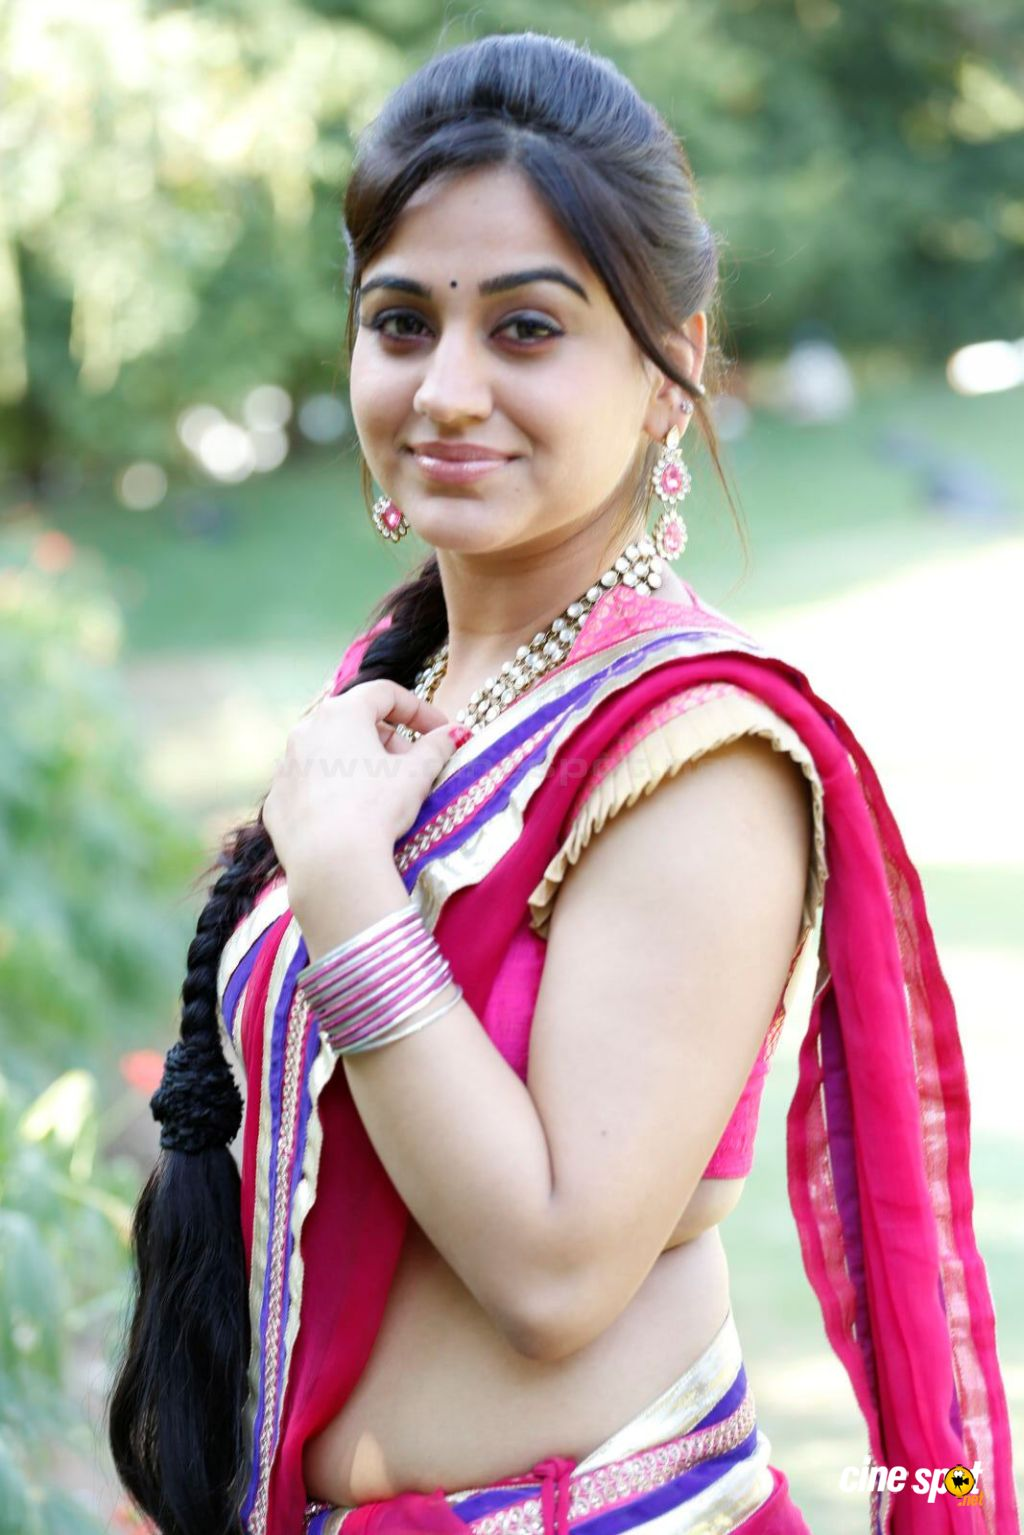 aksha sidri hot navel and cleavage show in saree from